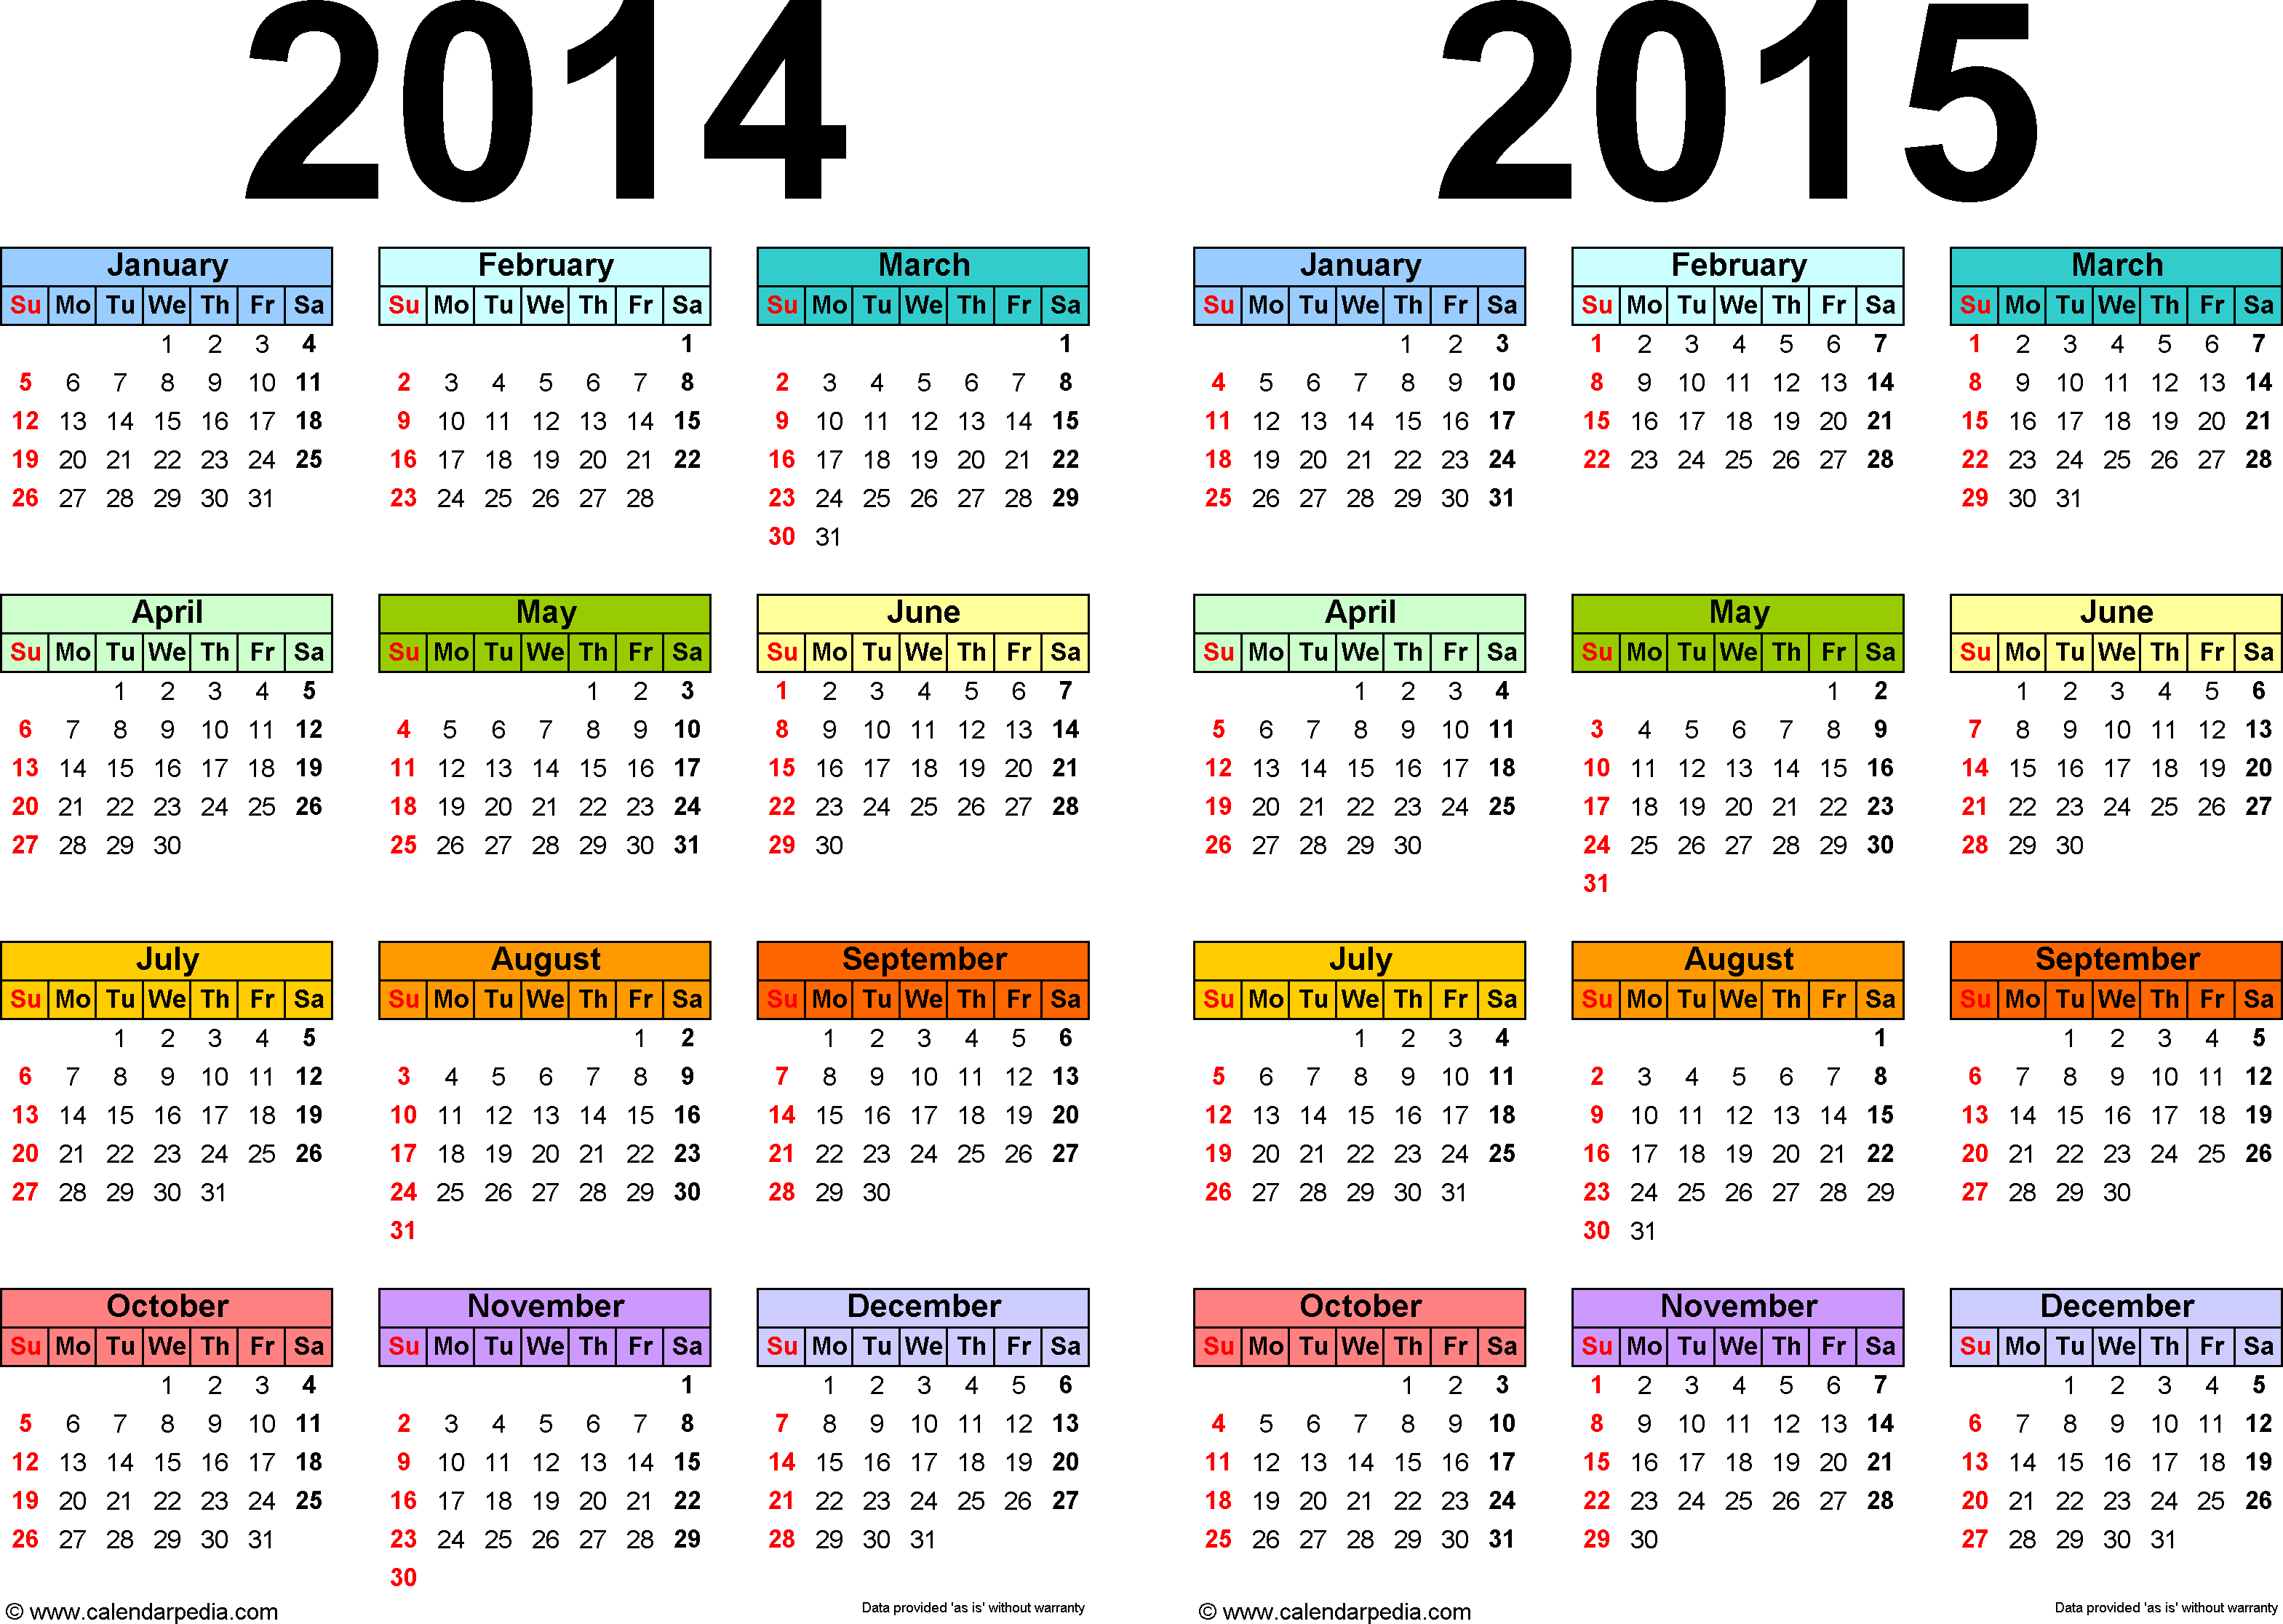 2014 2015 calendar free printable two year pdf calendars for Yearly planning calendar template 2014